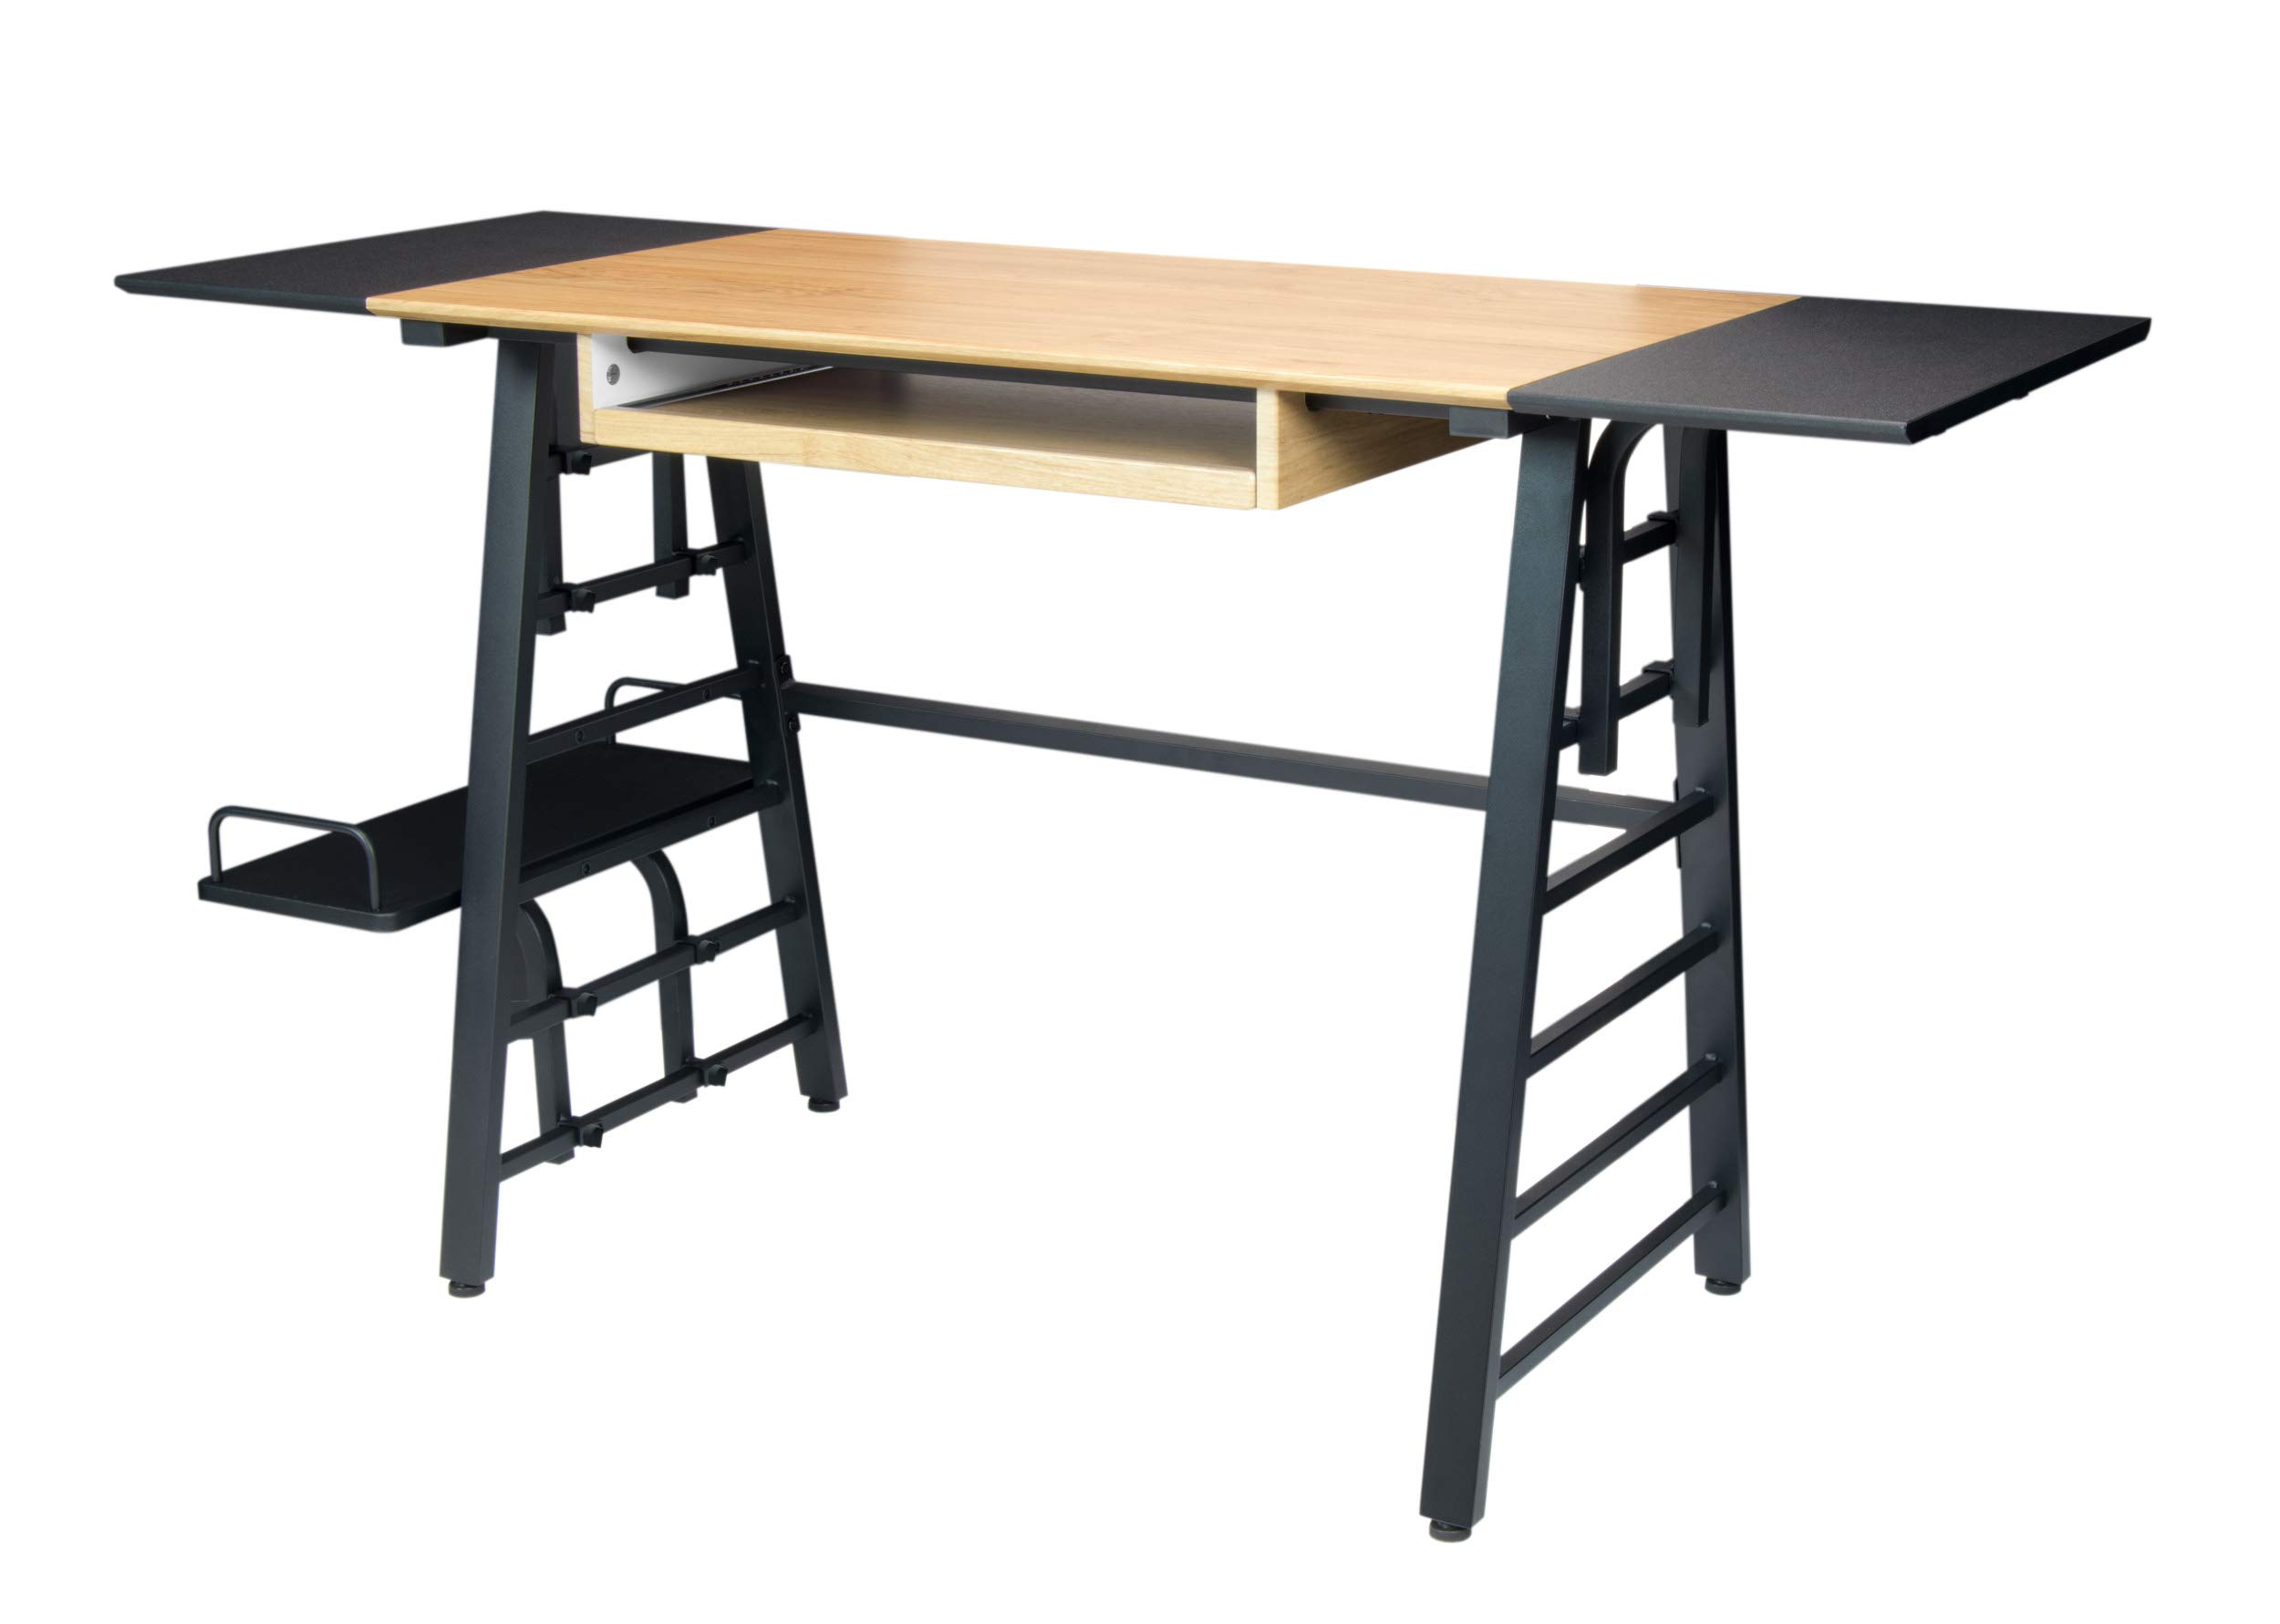 Calico Designs Convertible Art Drawing/Computer Desk for Kids in Ashwood/Graphite 51240 - Overall dimensions: 55.25W x 19.75D x 30H Two Removable table extensions: 9.75W x 19.75D Removable CPU shelf: 7.75W x 19.75D - writing-desks, living-room-furniture, living-room - 71phTRRDBTL -